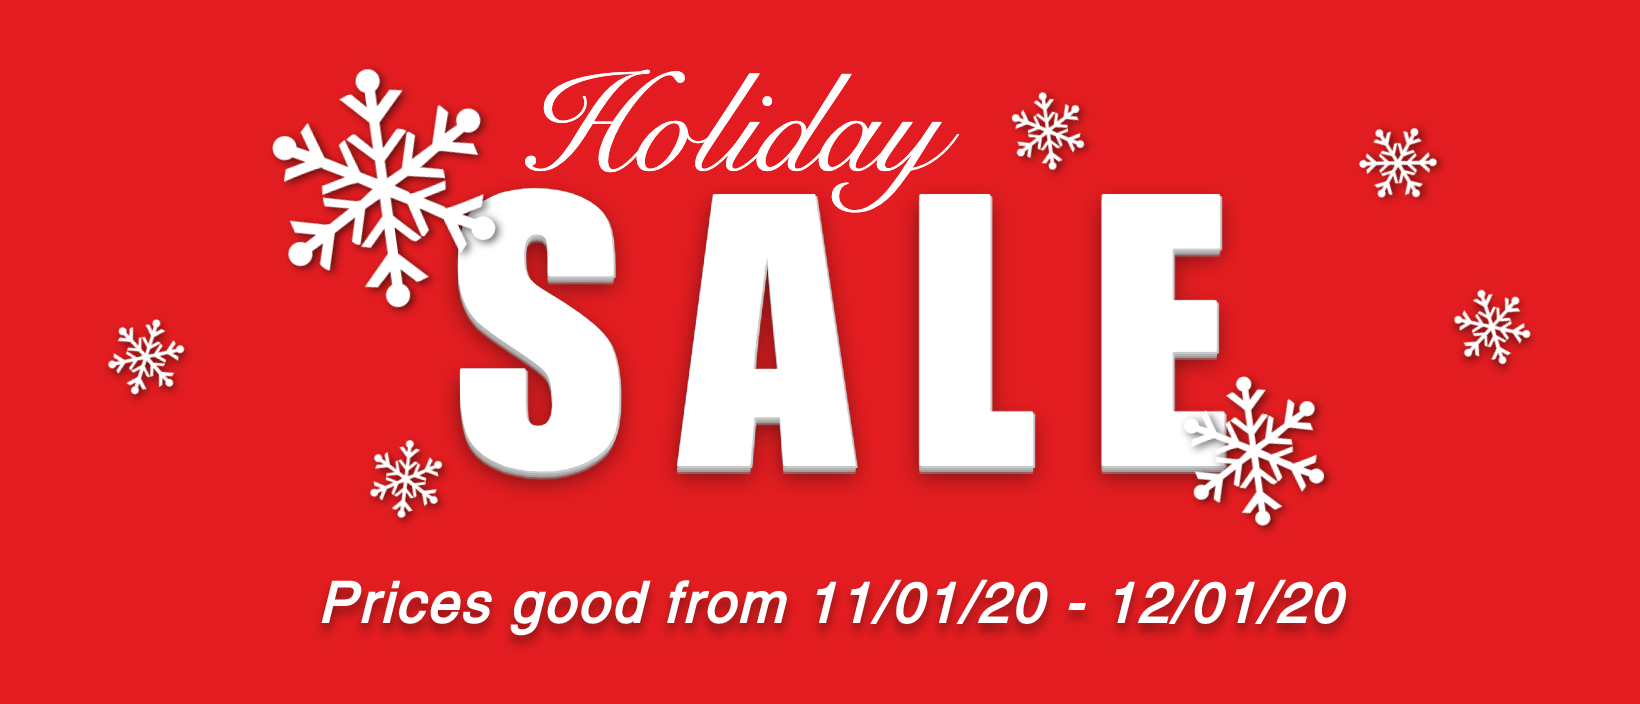 Holiday Sale Image.png